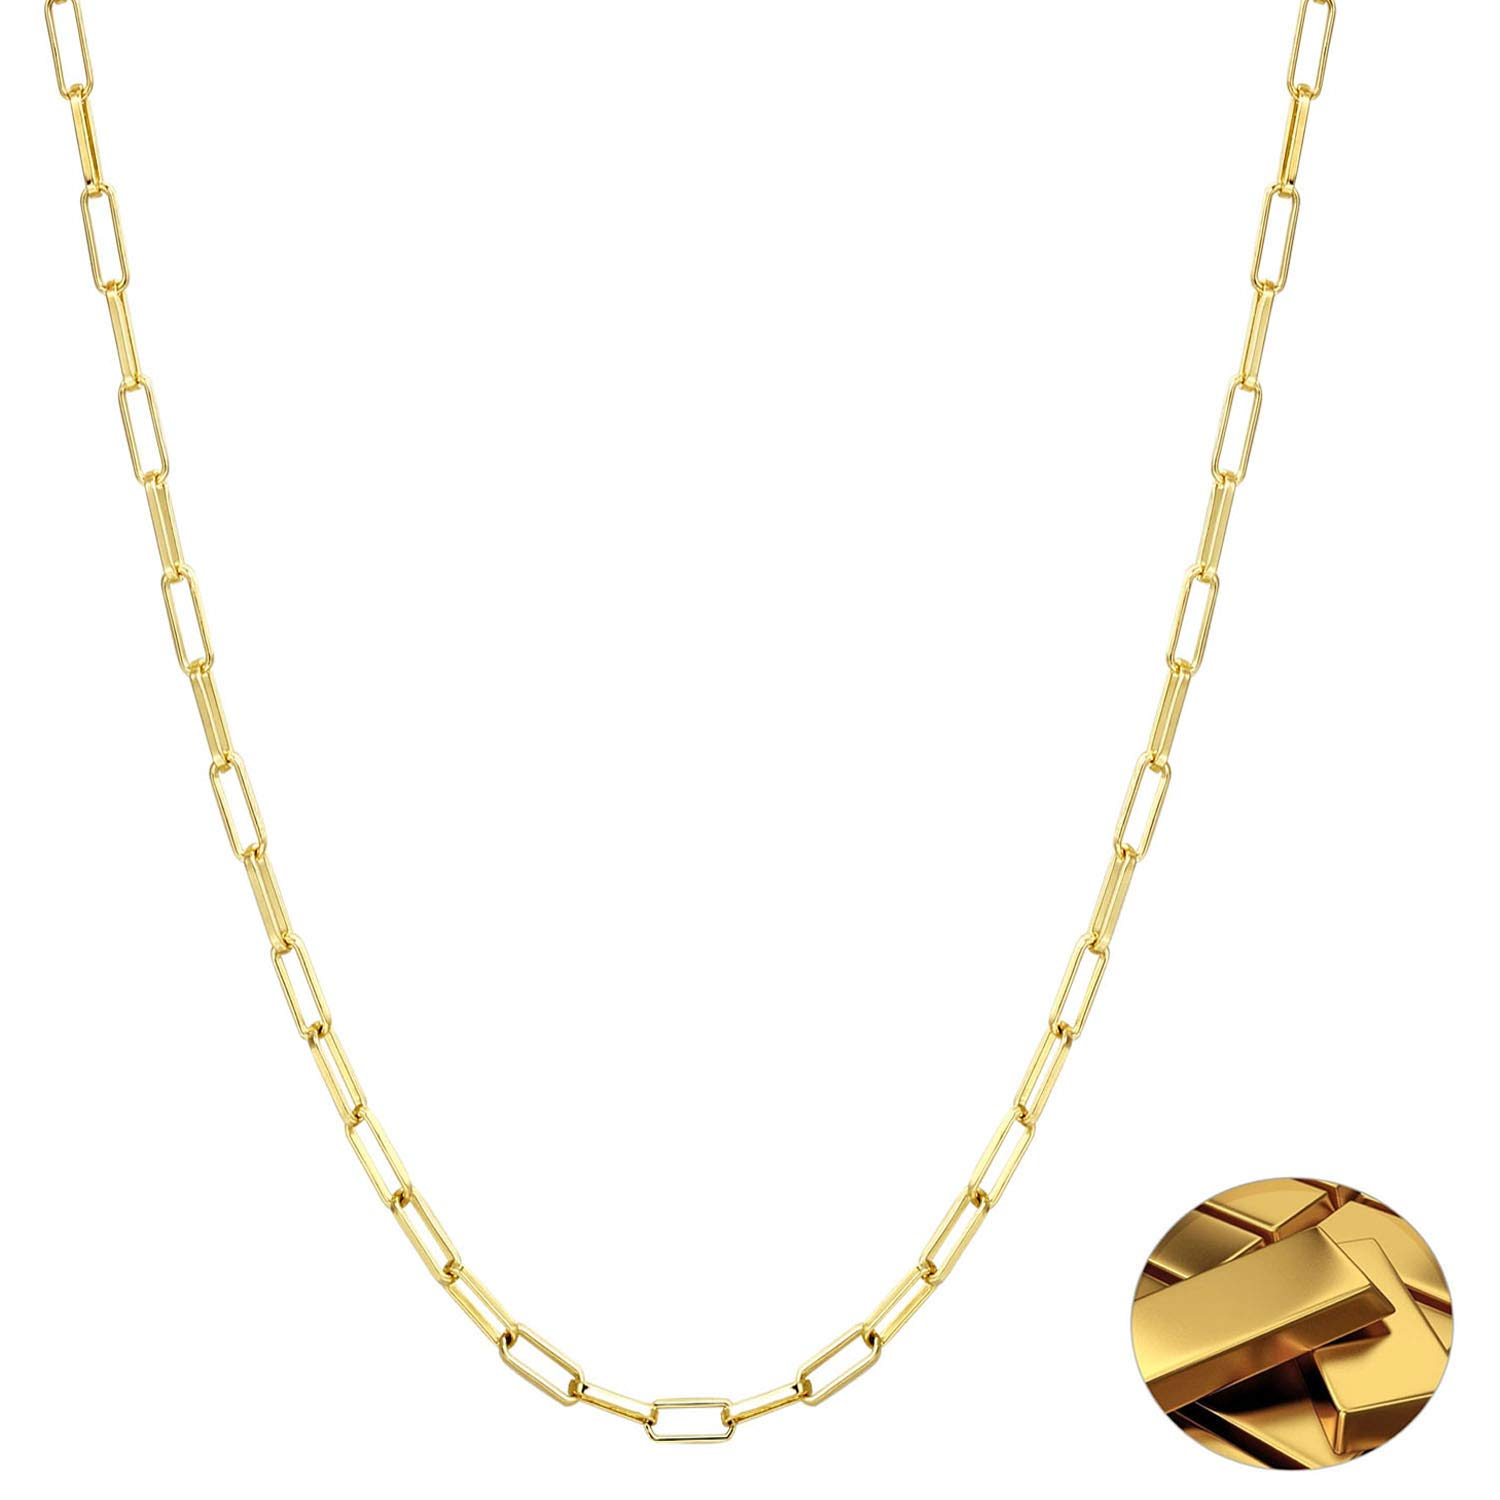 Chain Necklace 14K Real Gold Plated Dainty Figaro Paperclip Chain Oval Link Chain to DIY Jewelry Making Ideal Gifts for Women and Girls in Daily Life 24inch